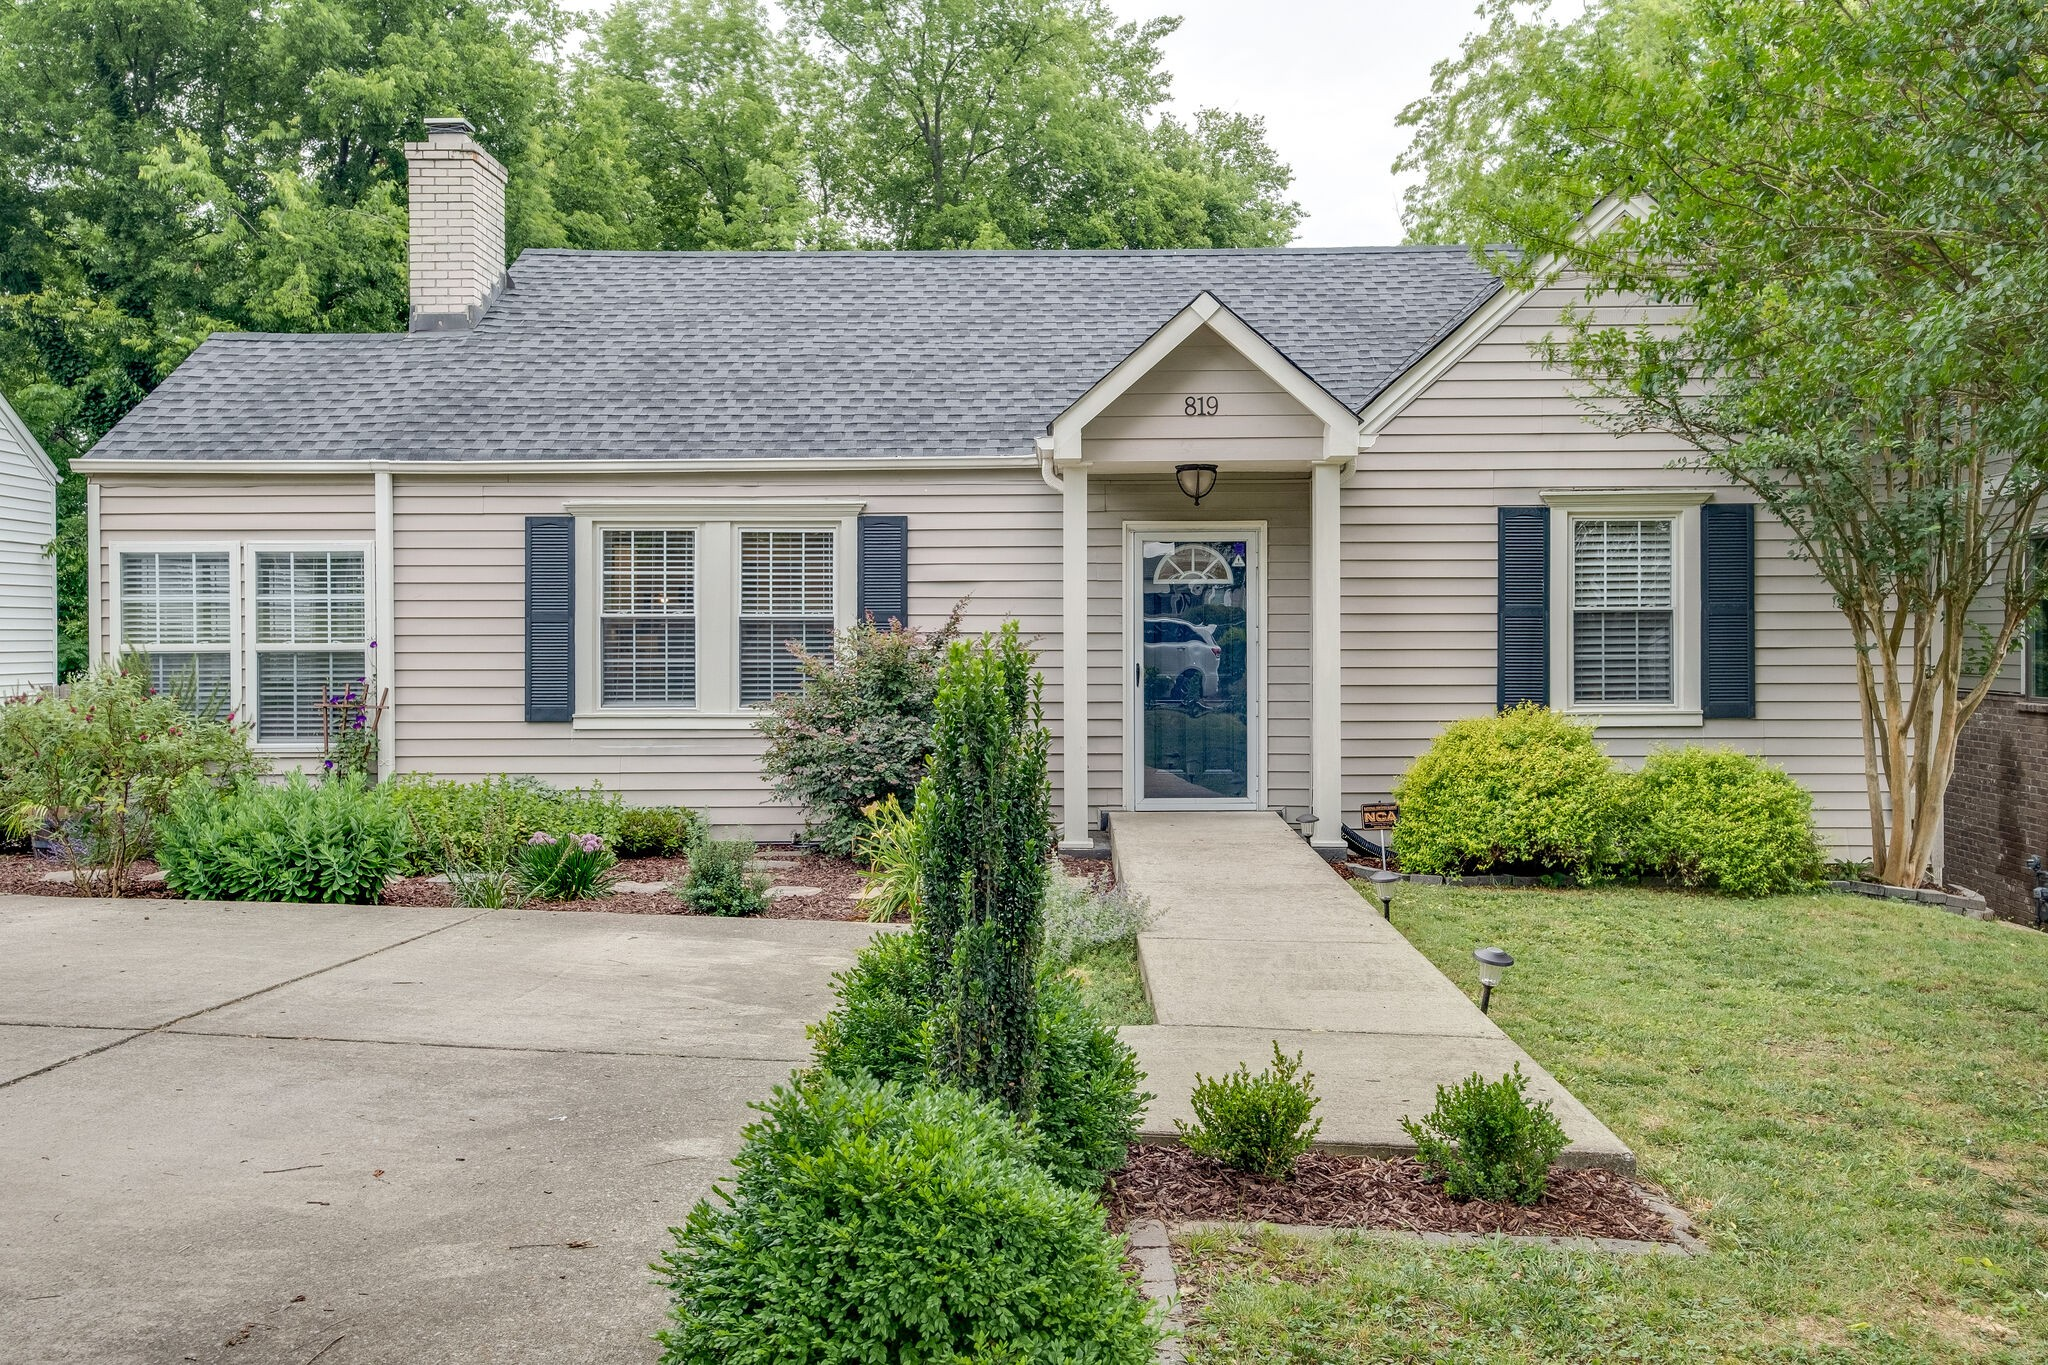 819 Dewees Ave Property Photo - Nashville, TN real estate listing